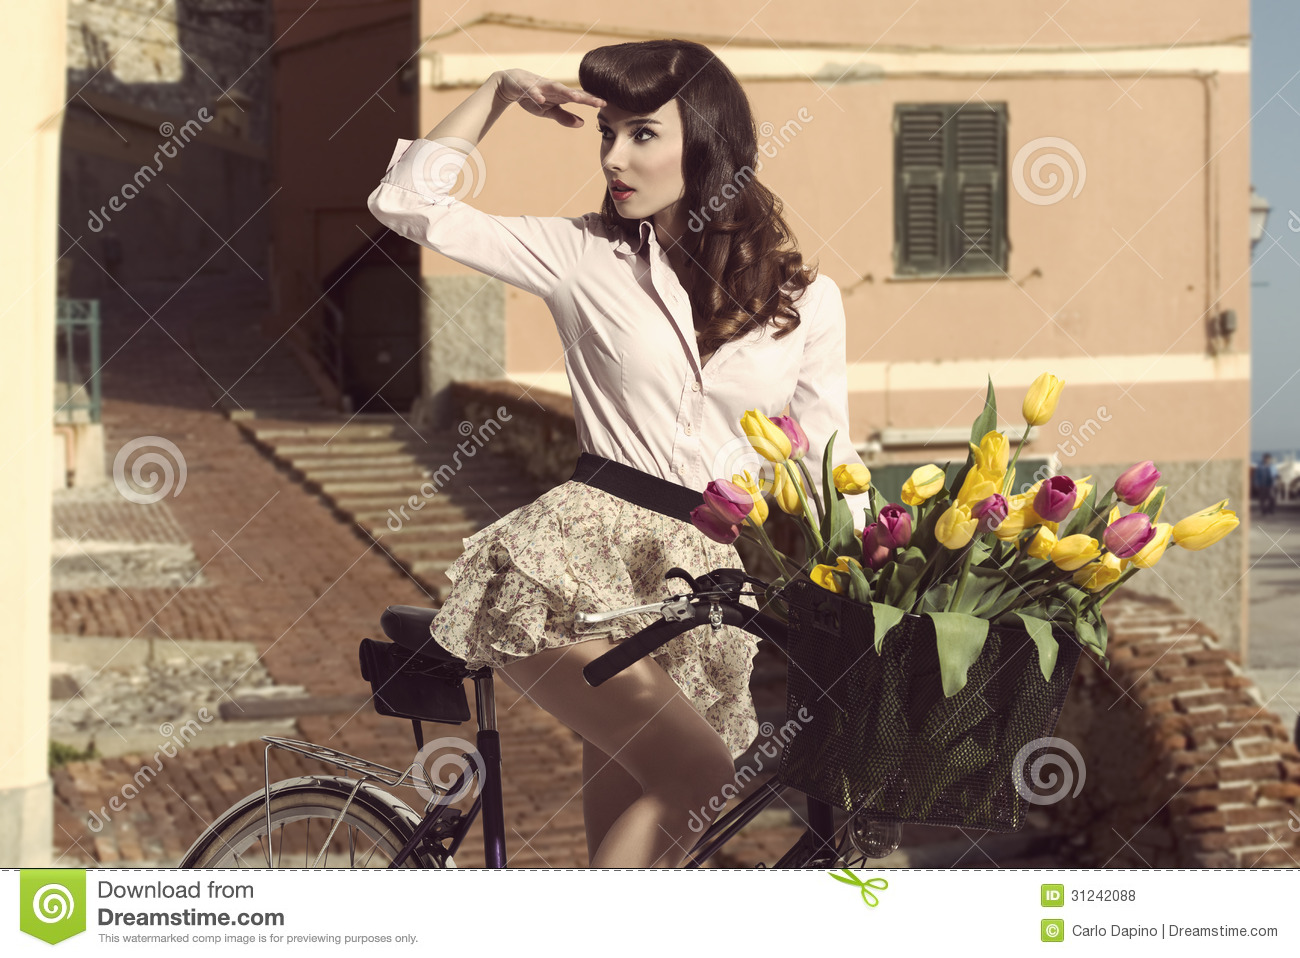 Vintage Pin Up With Flowers On Bike In Old Town Royalty